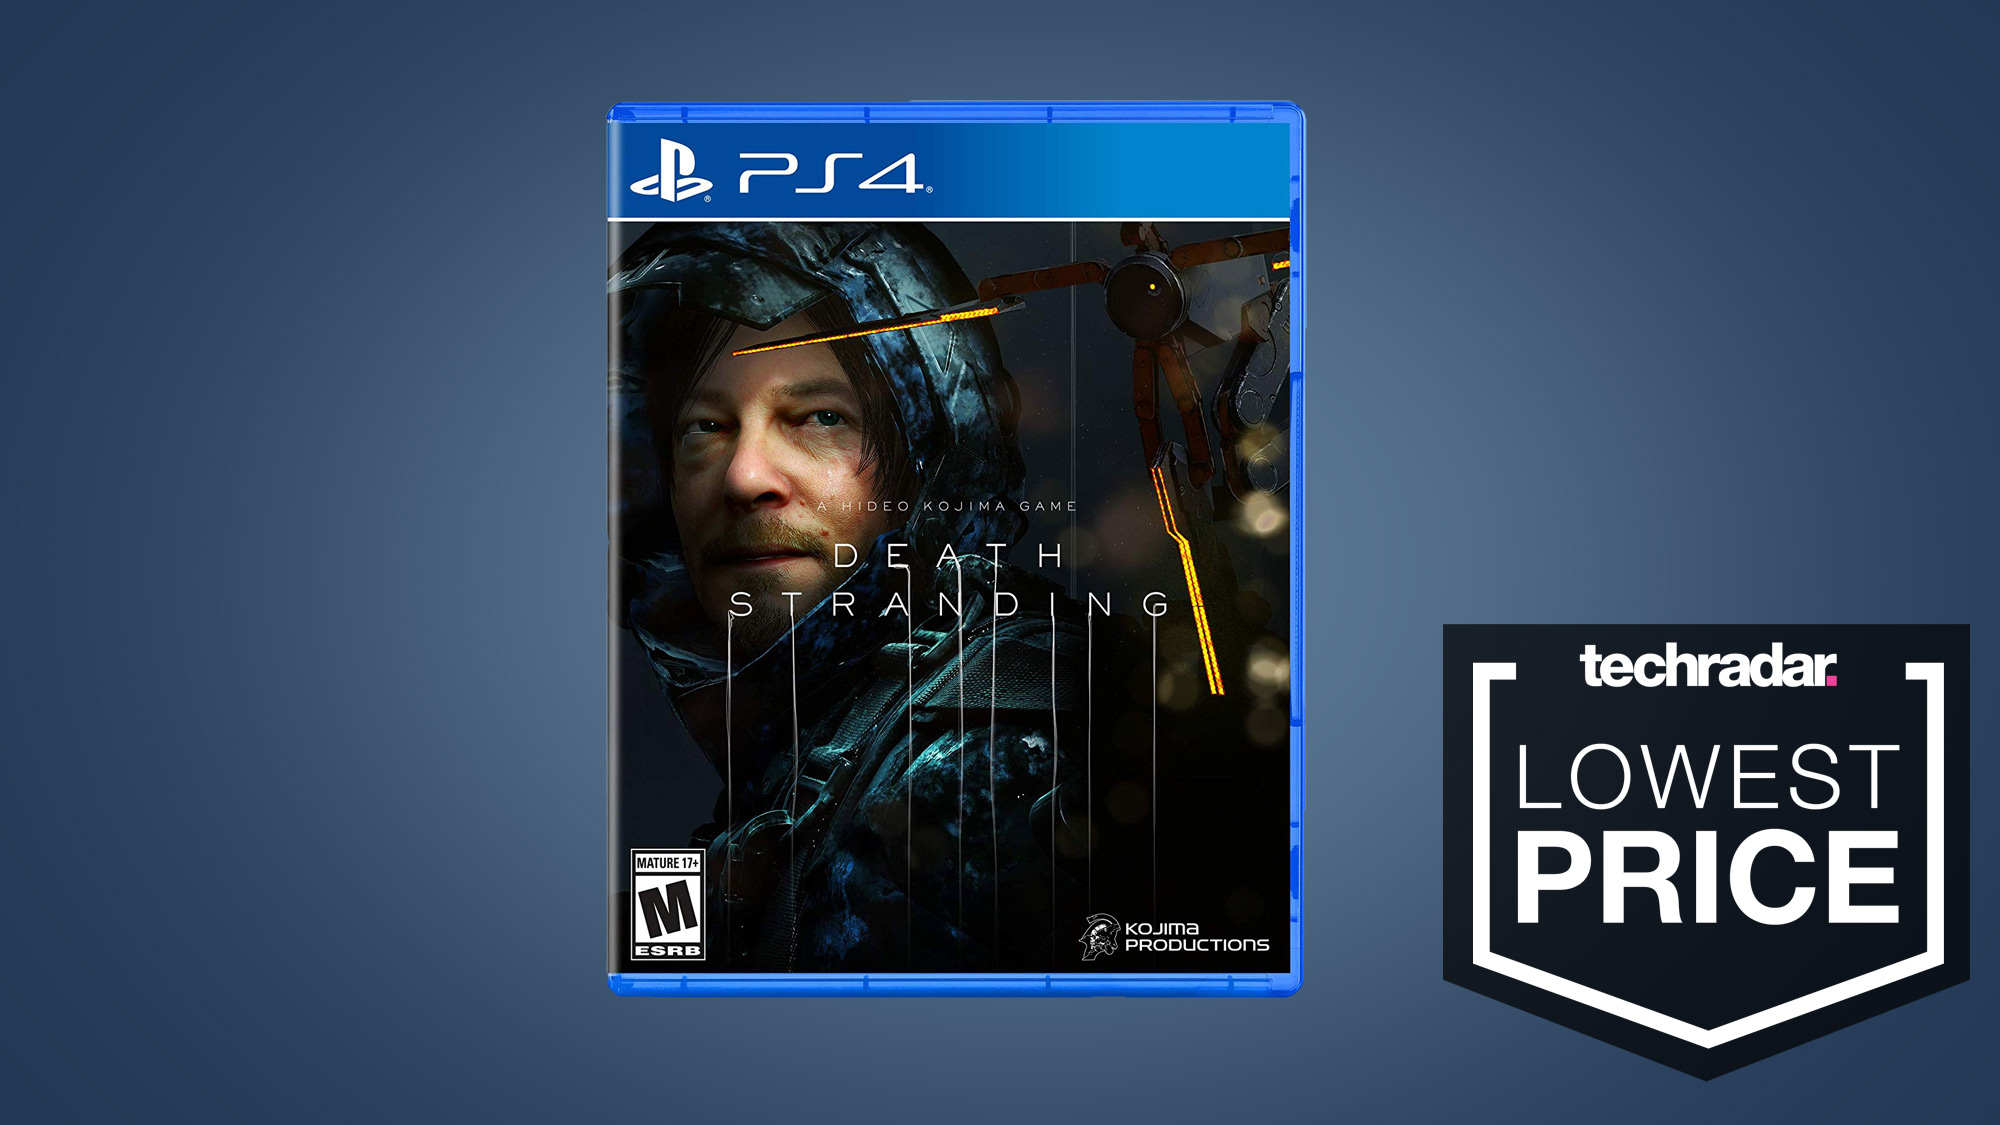 Death Stranding has been discounted to its lowest price yet